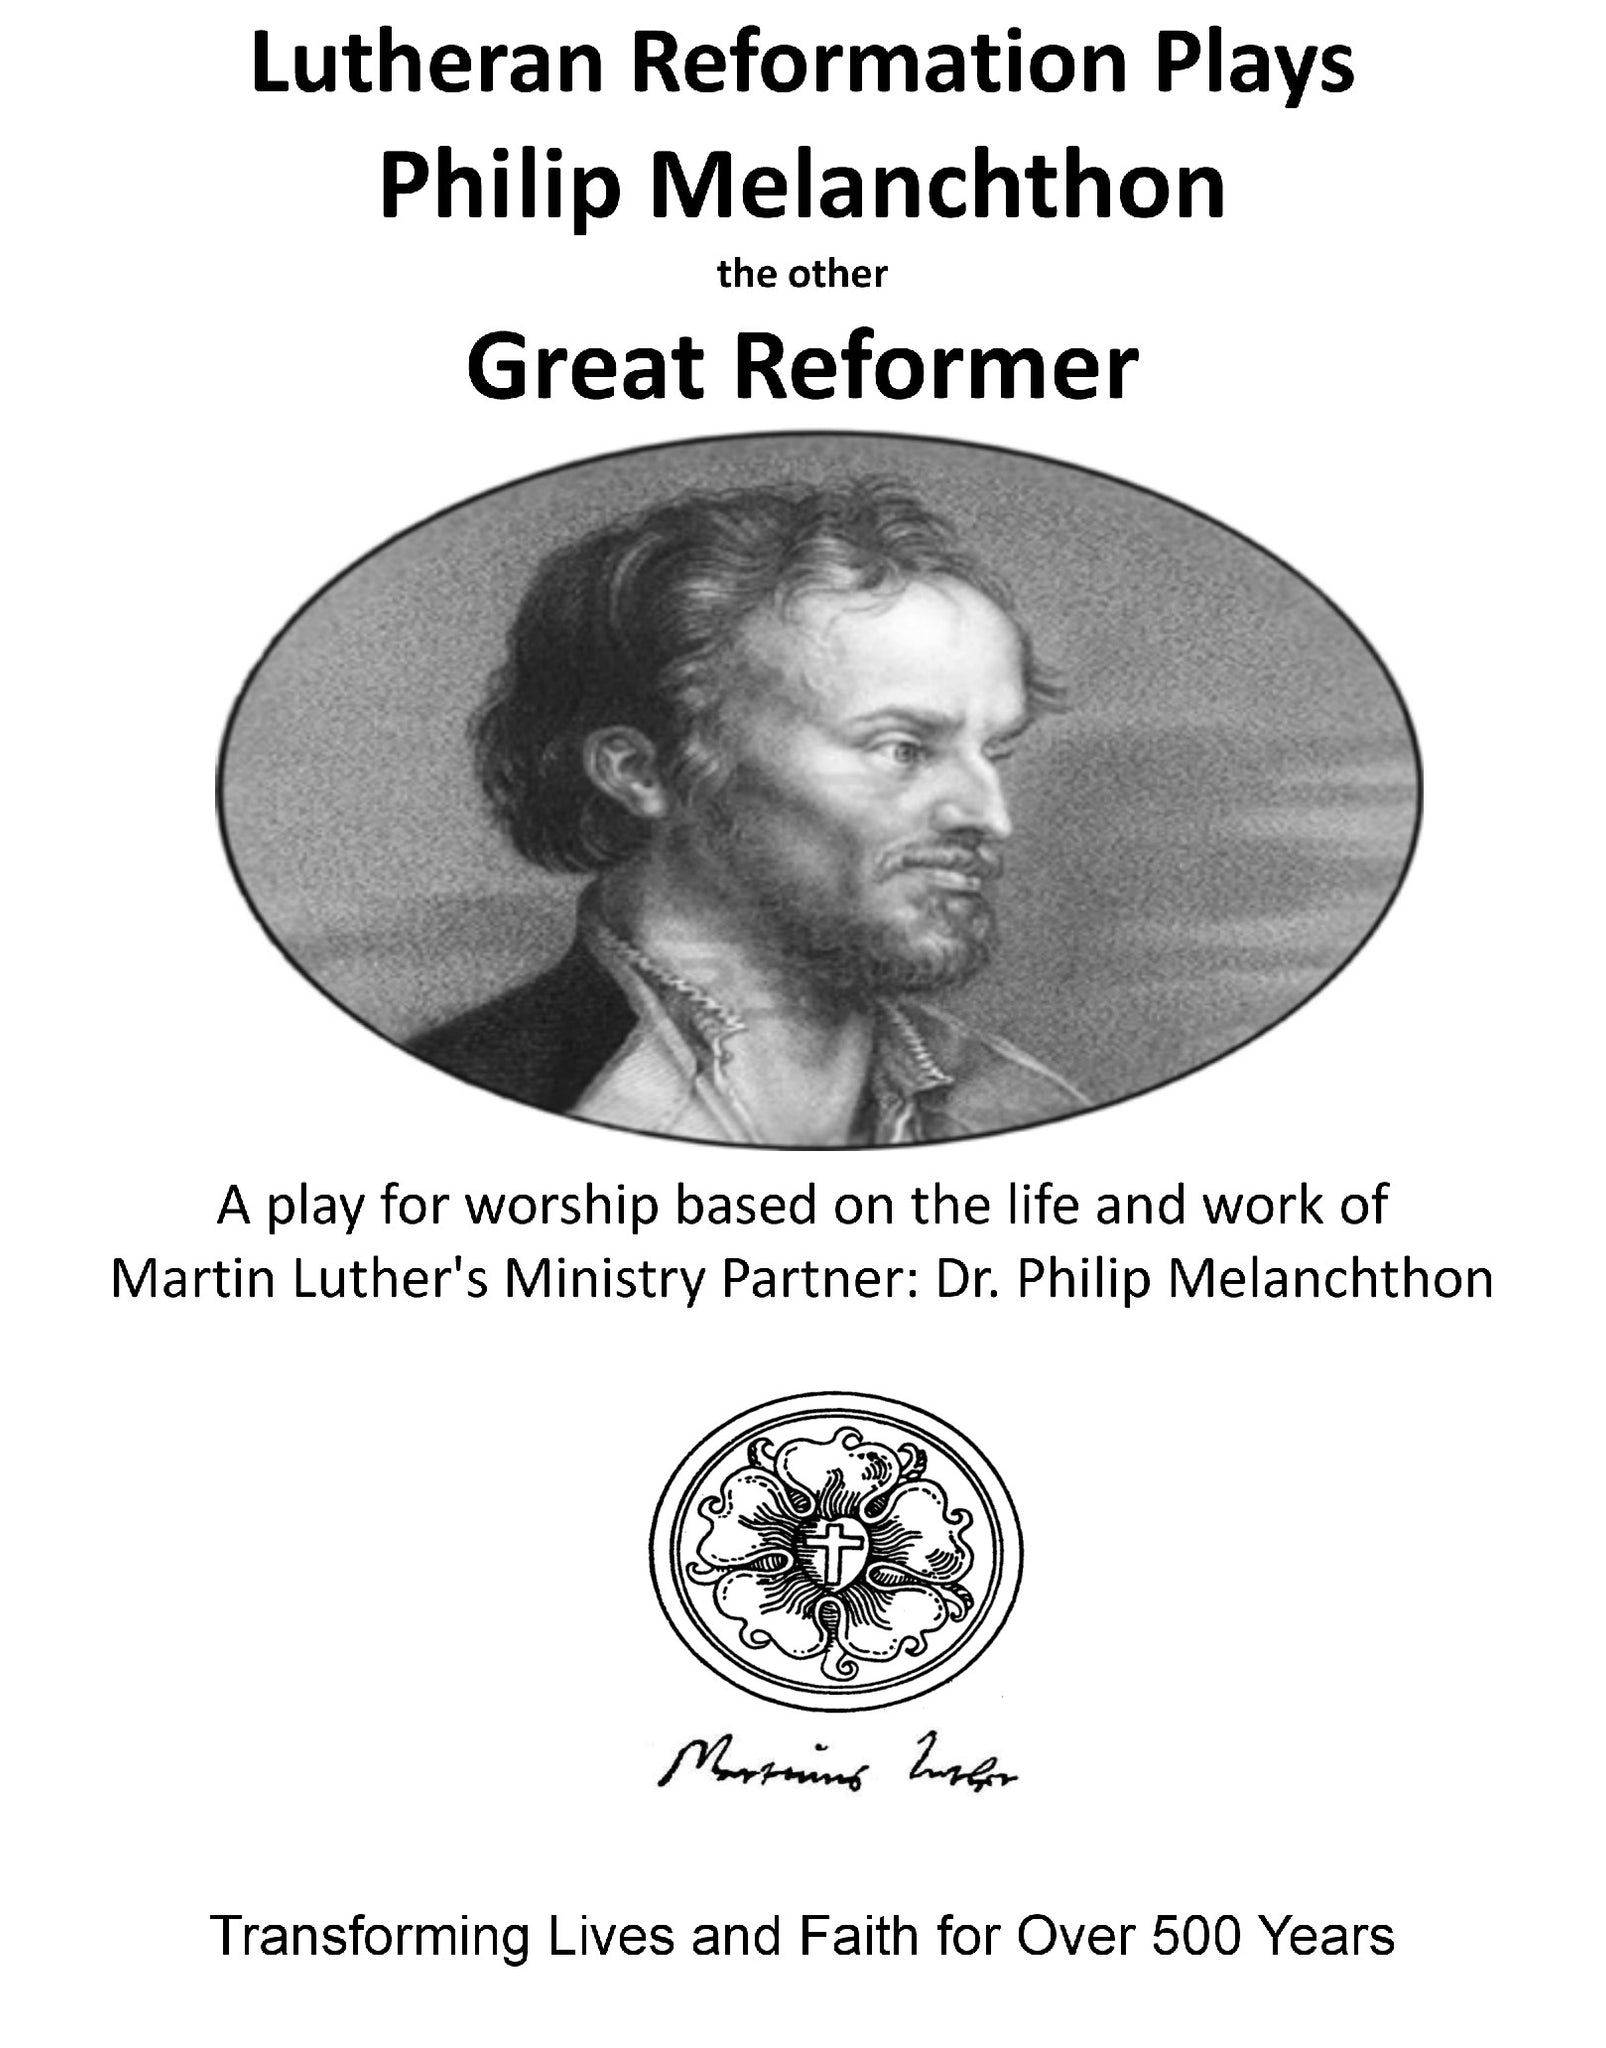 Lutheran Reformation Plays: Philip Melanchthon, the Other Great Reformer